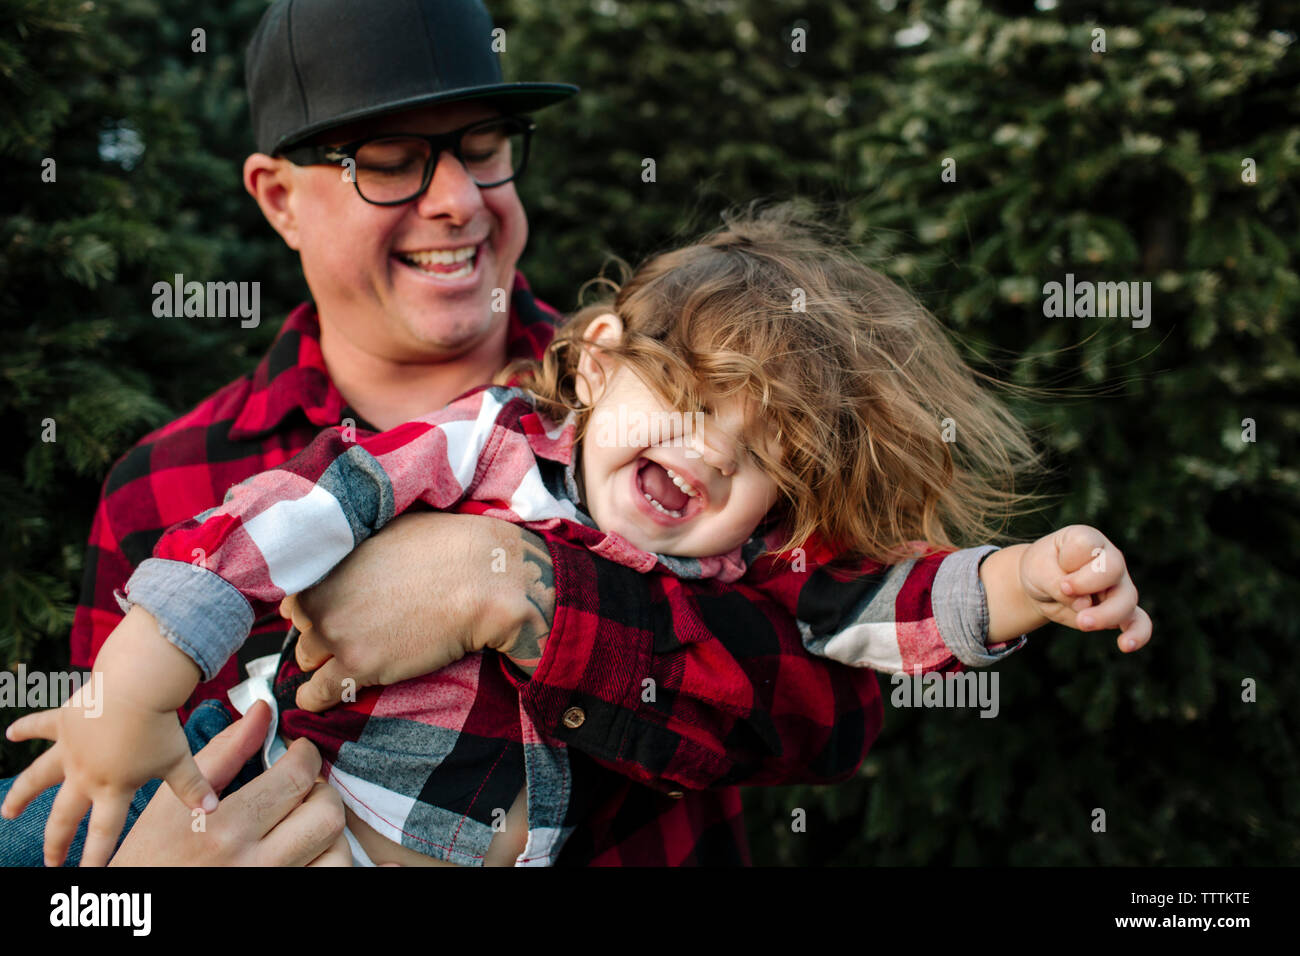 Playful father carrying cheerful son against Christmas Trees - Stock Image